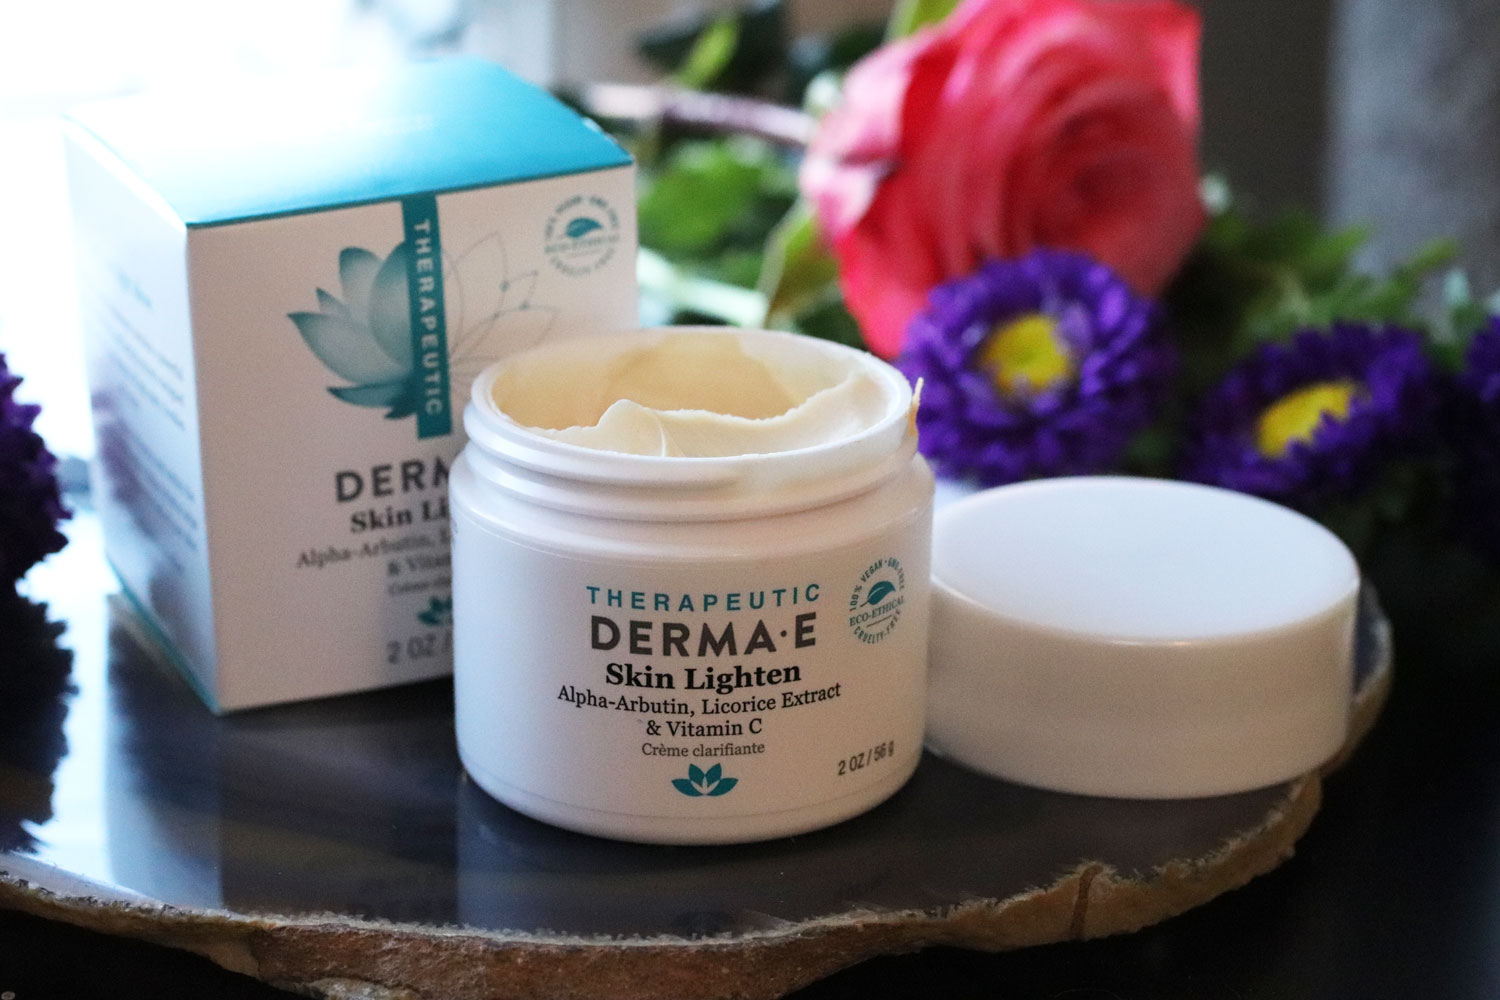 Derma E Skin Lighten Acne Scar and Spot Treatment Review